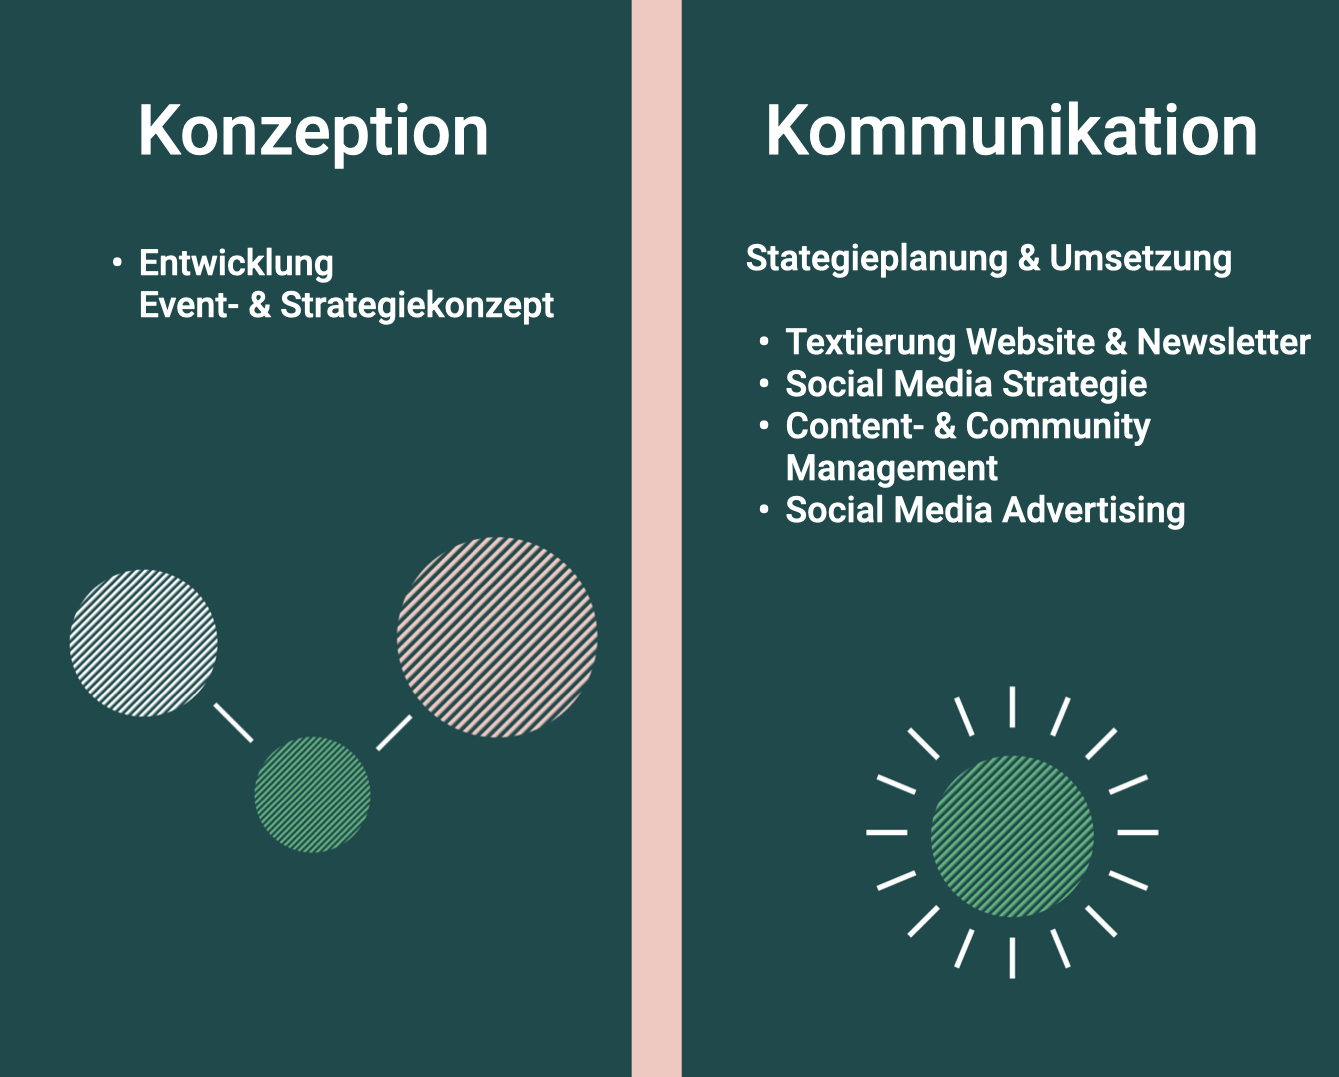 Auf dem Bild sind die Leistungen von Visionistas in einer Grafik zu lesen: Konzeption: Entwicklung Event- & Strategiekonzept Kommunikation: Textierung Website & Newsletter, Social Media Strategie, Content- & Community 